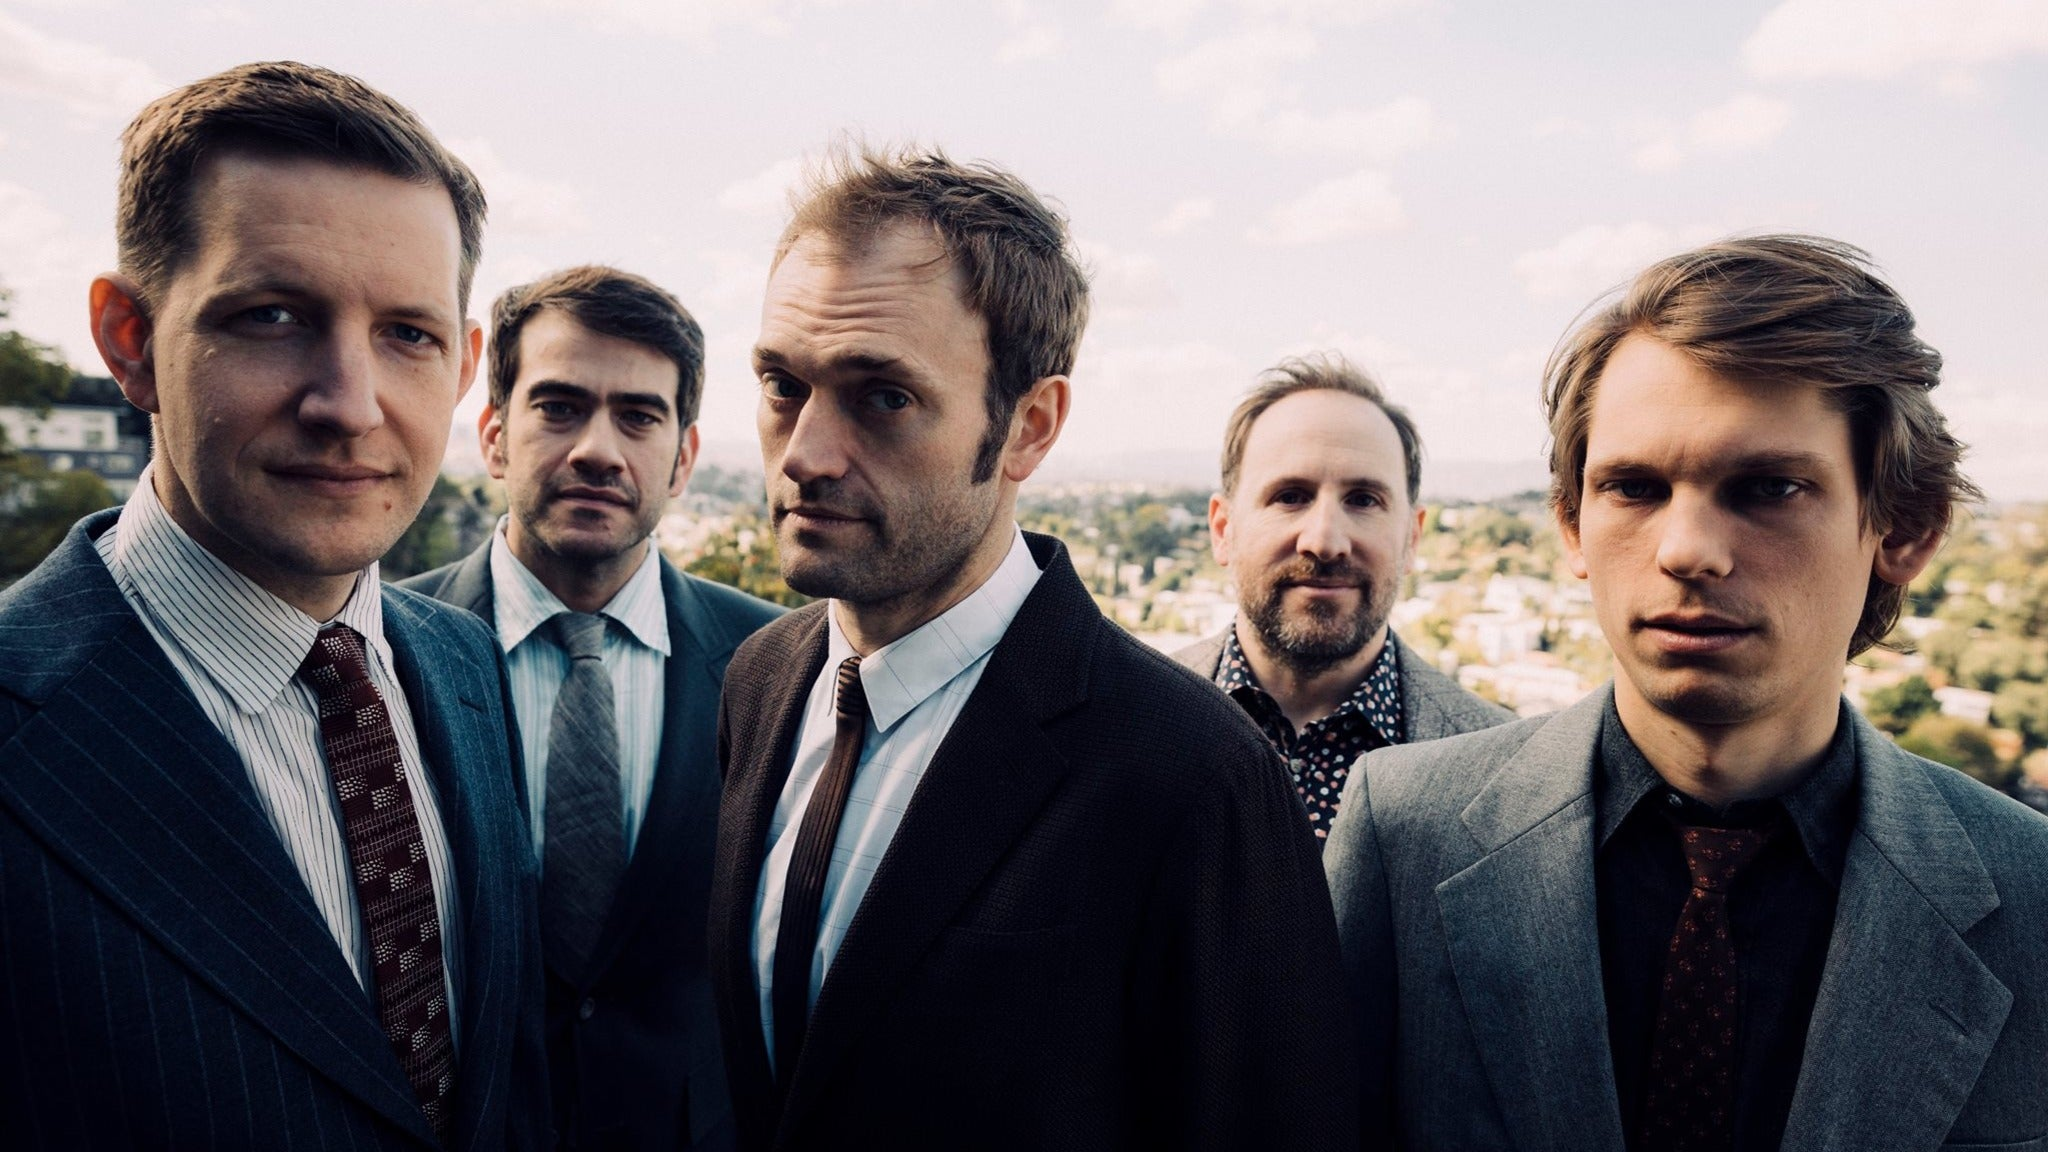 Punch Brothers at The Observatory - San Diego - San Diego, CA 92104